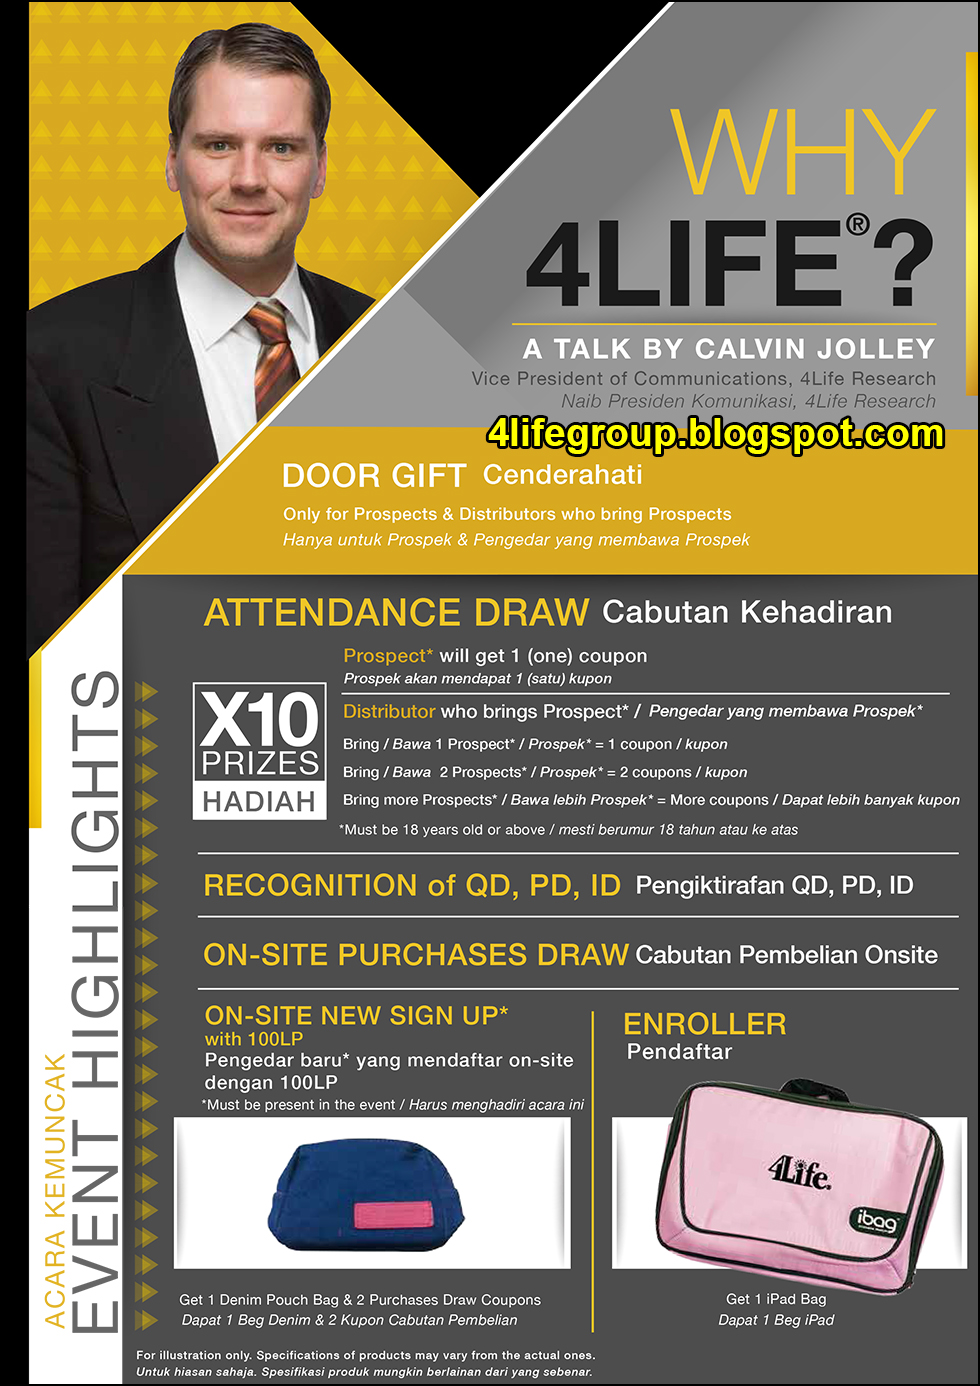 foto Why 4Life - A Talk by Calvin Jolley (1)